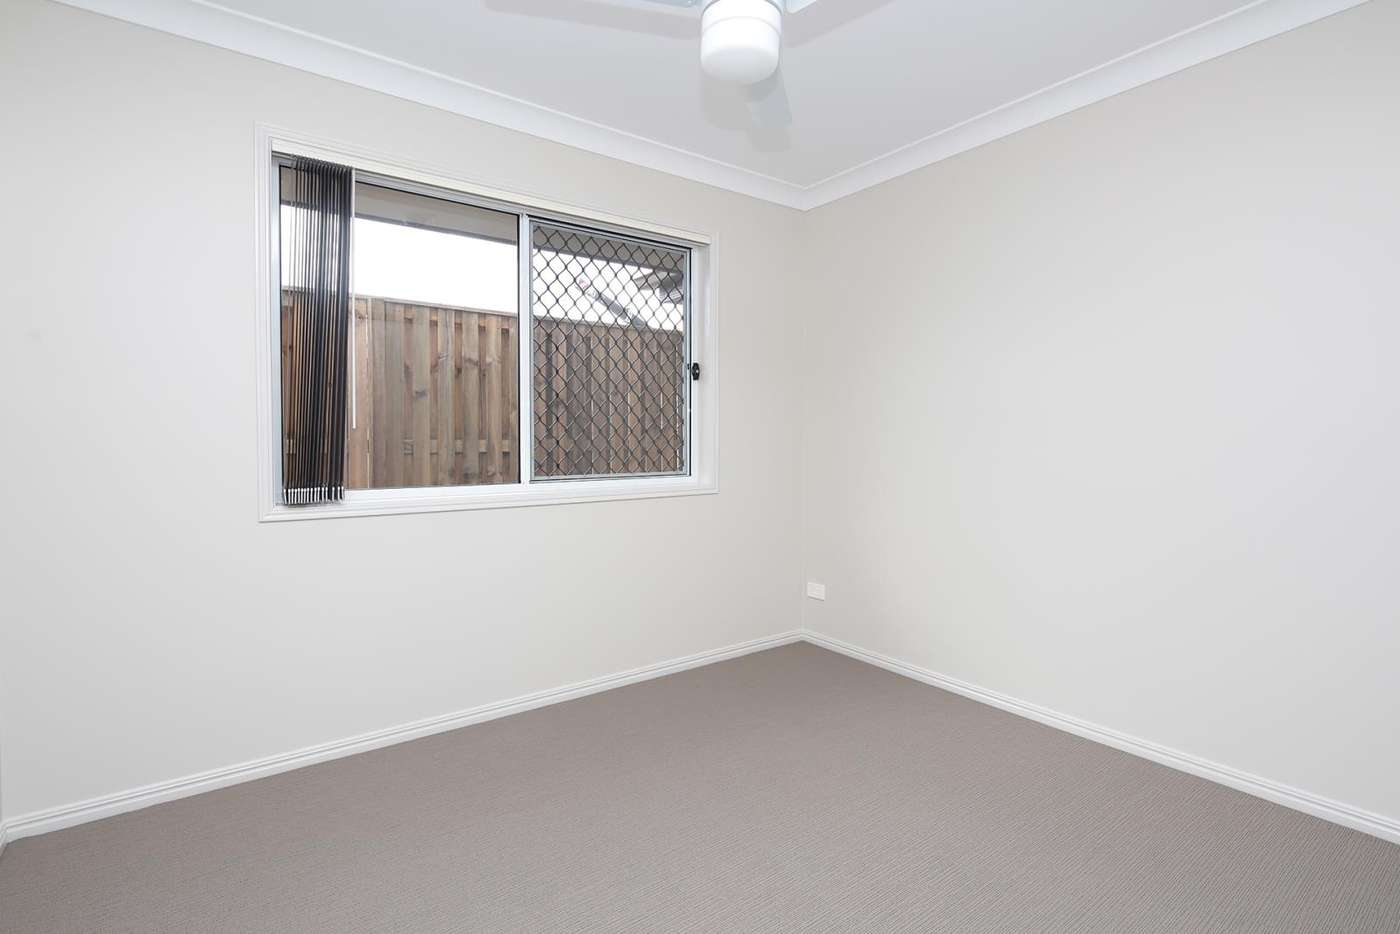 Fifth view of Homely house listing, 6 Kains Avenue, Brassall QLD 4305